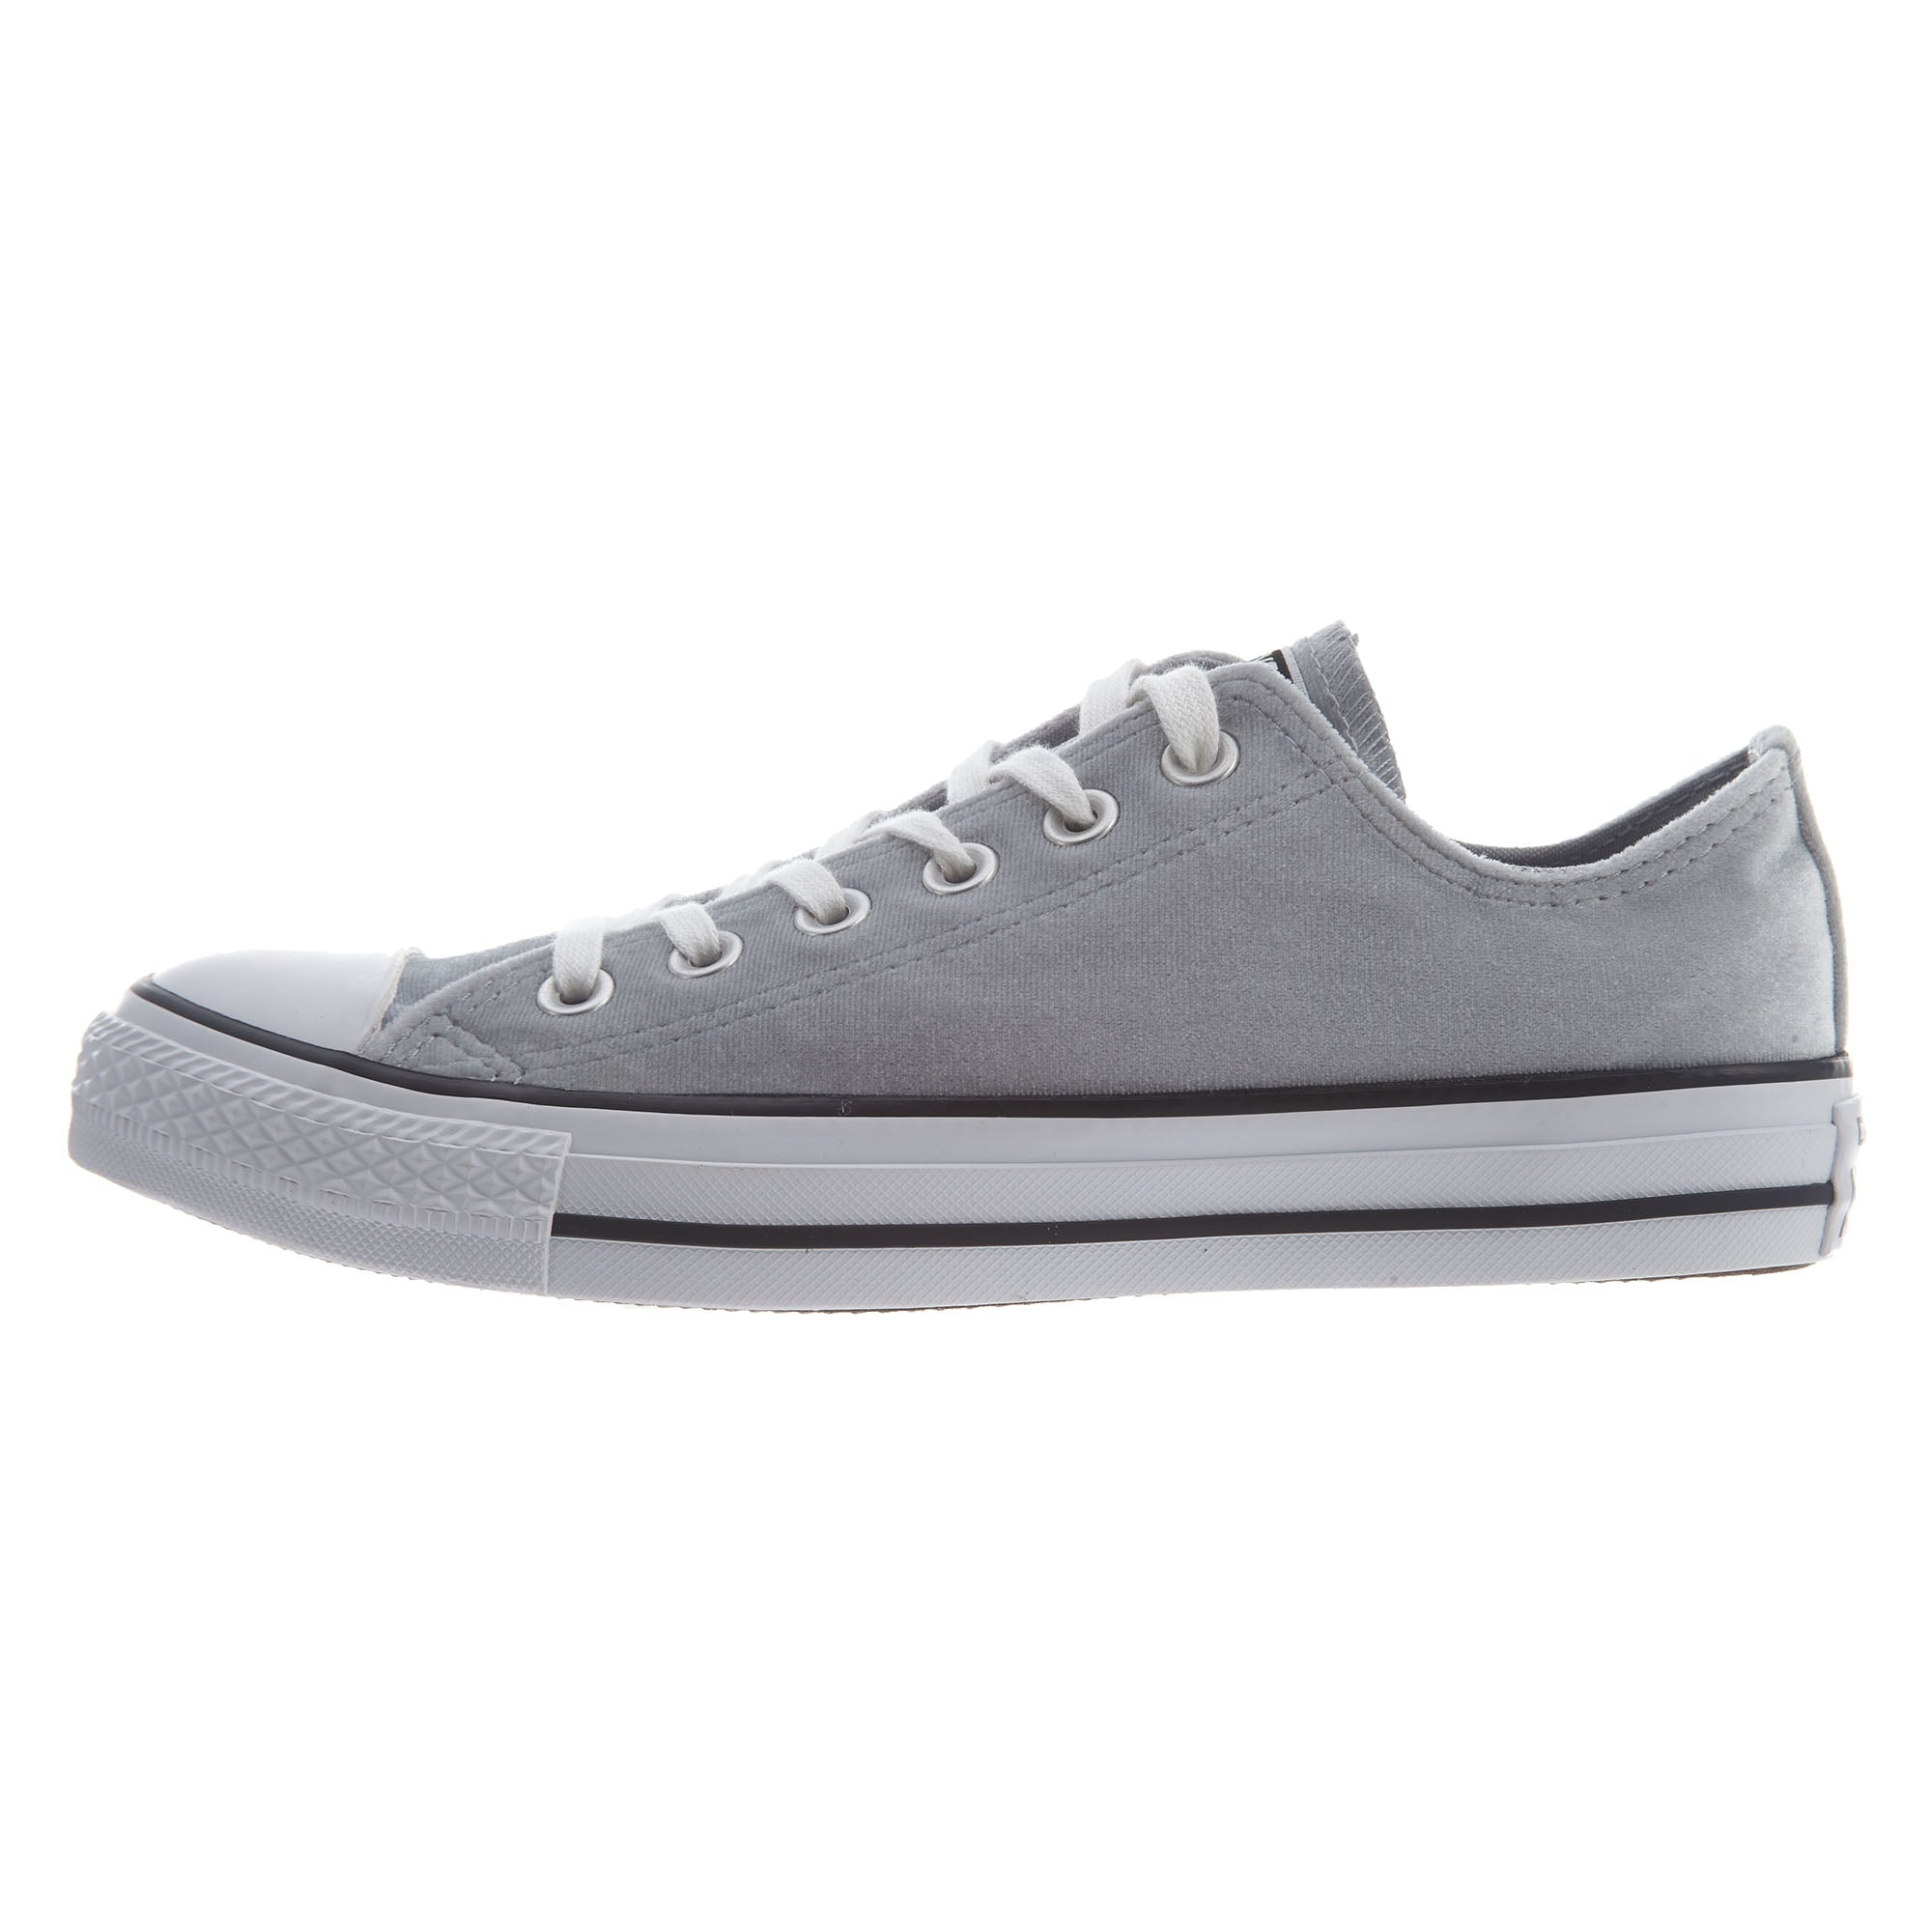 7824249a53be Converse Chuck Tailor All Star Ox Womens Style   557990f-WOLF GREY WHI –  talkmoney730